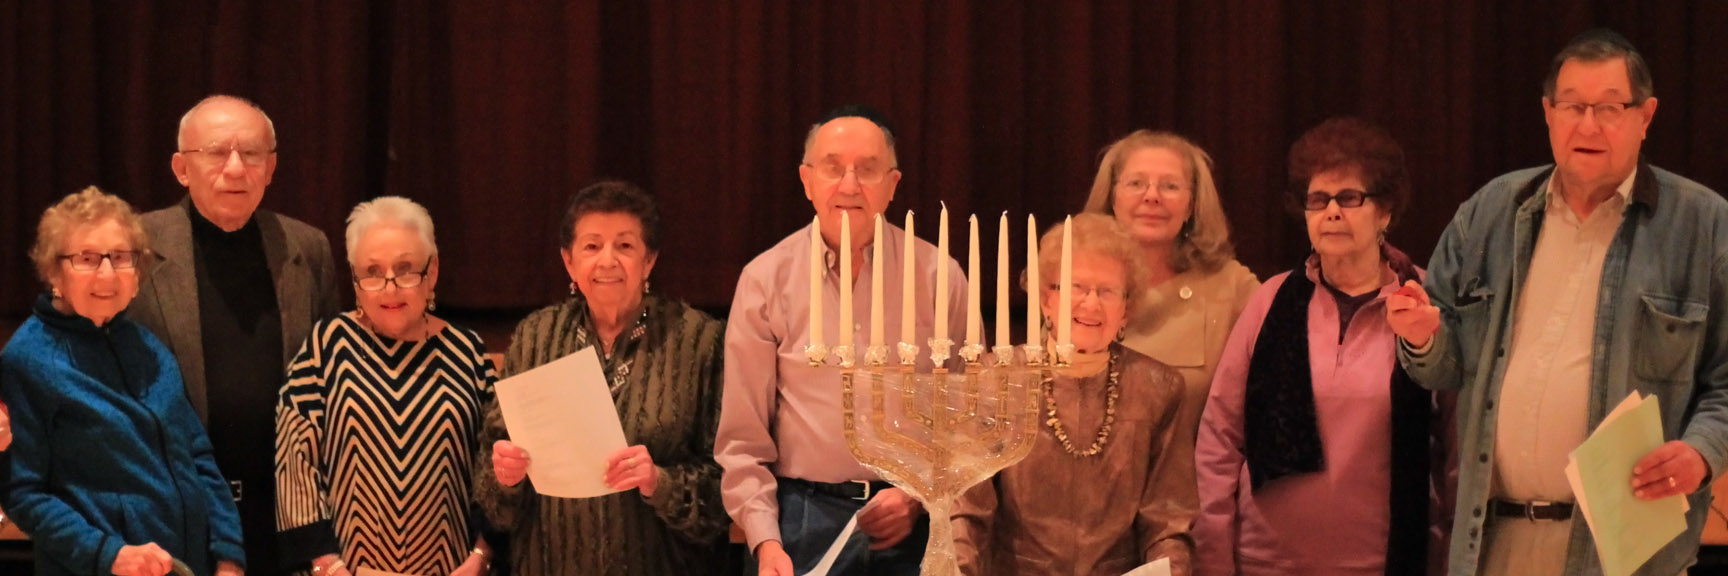 JCC of the Lehigh Valley Allentown Friendship Circle Hanukkah Event  CC Attribution 3.0 Kaitlyn Stefanowicz